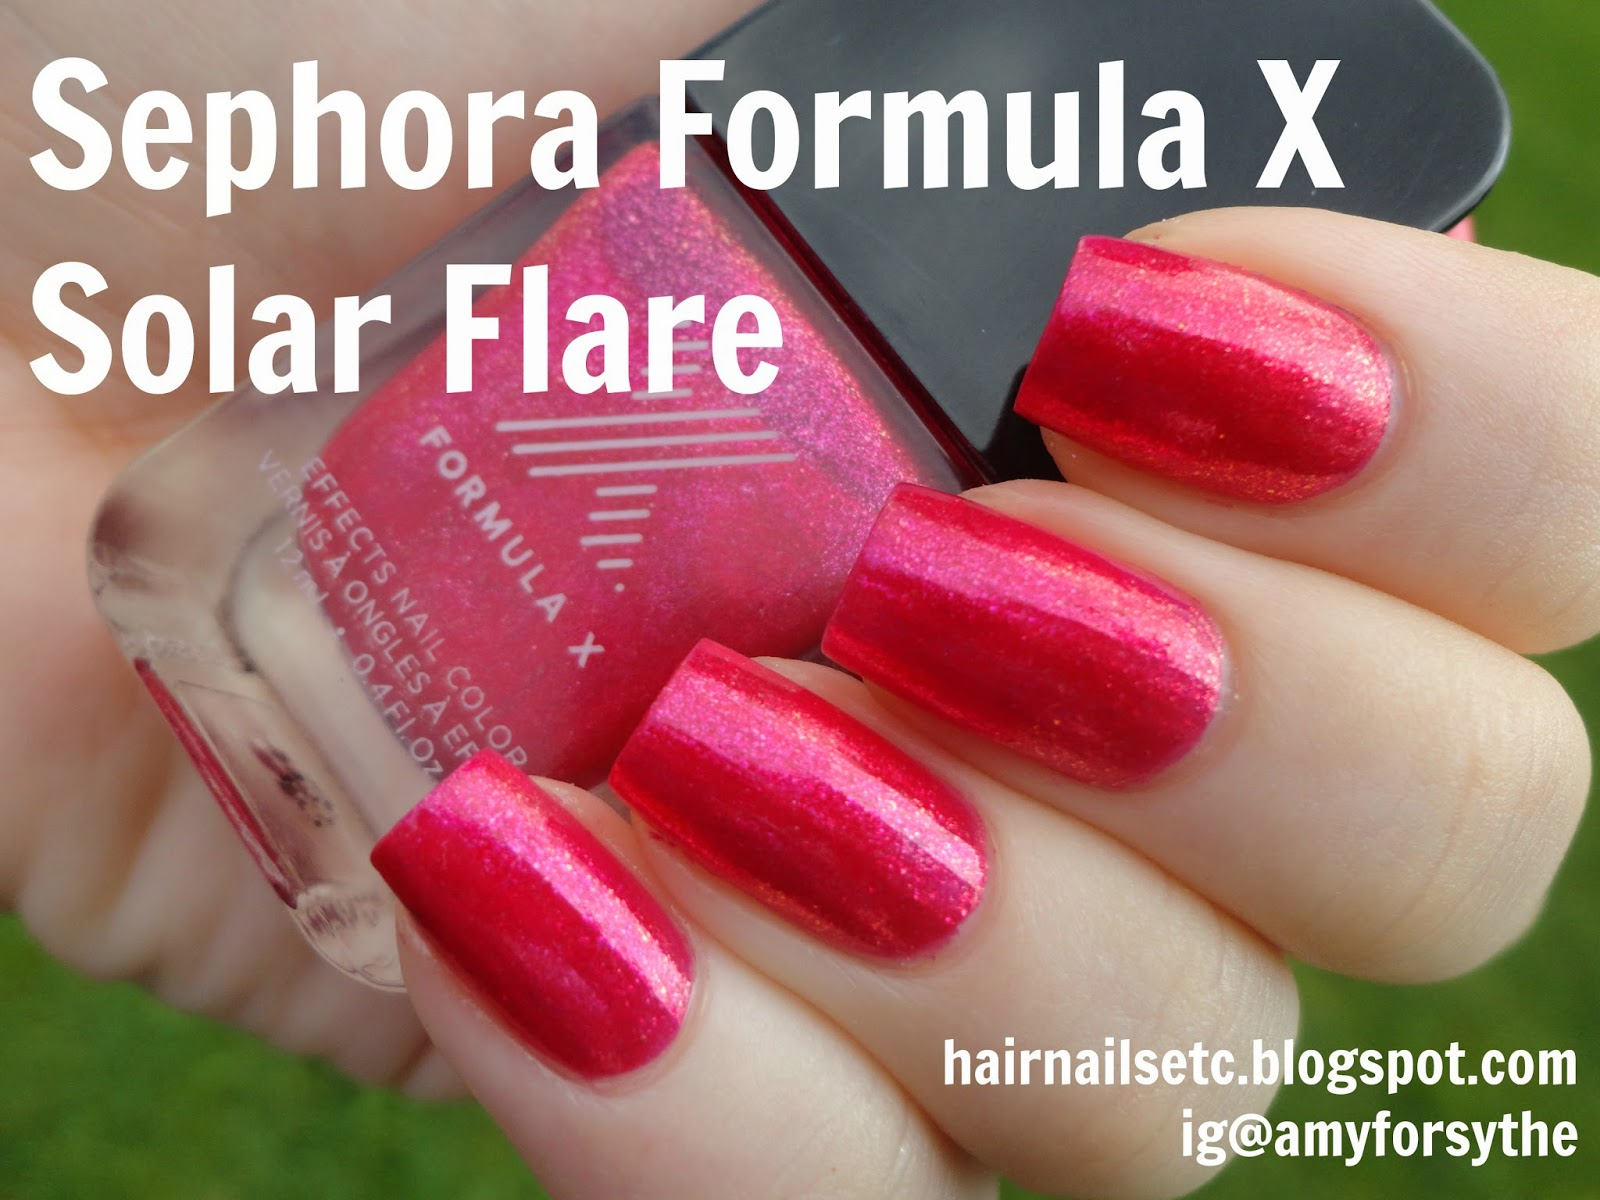 Sephora Formula X Nail Polish in Solar Flare from Liquid Crystals collection